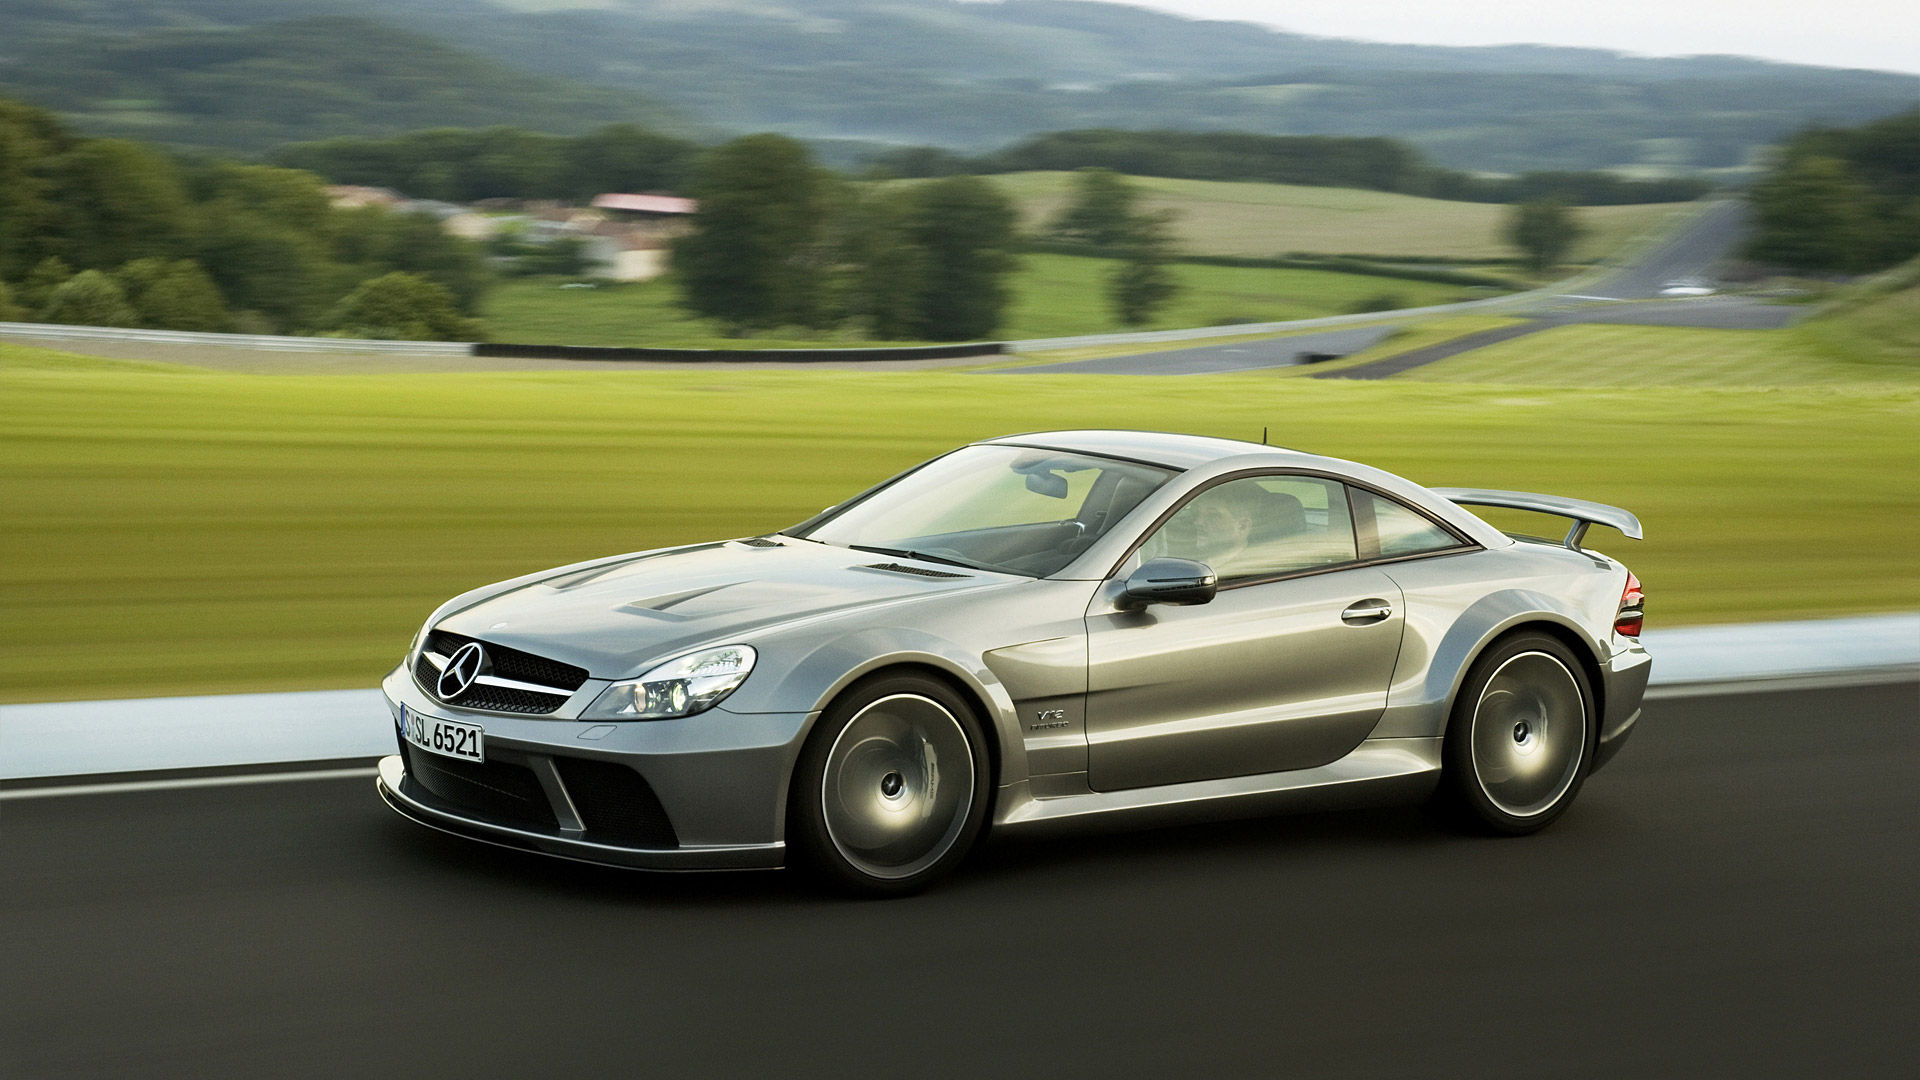 2009 Mercedes-Benz SL 65 AMG Black